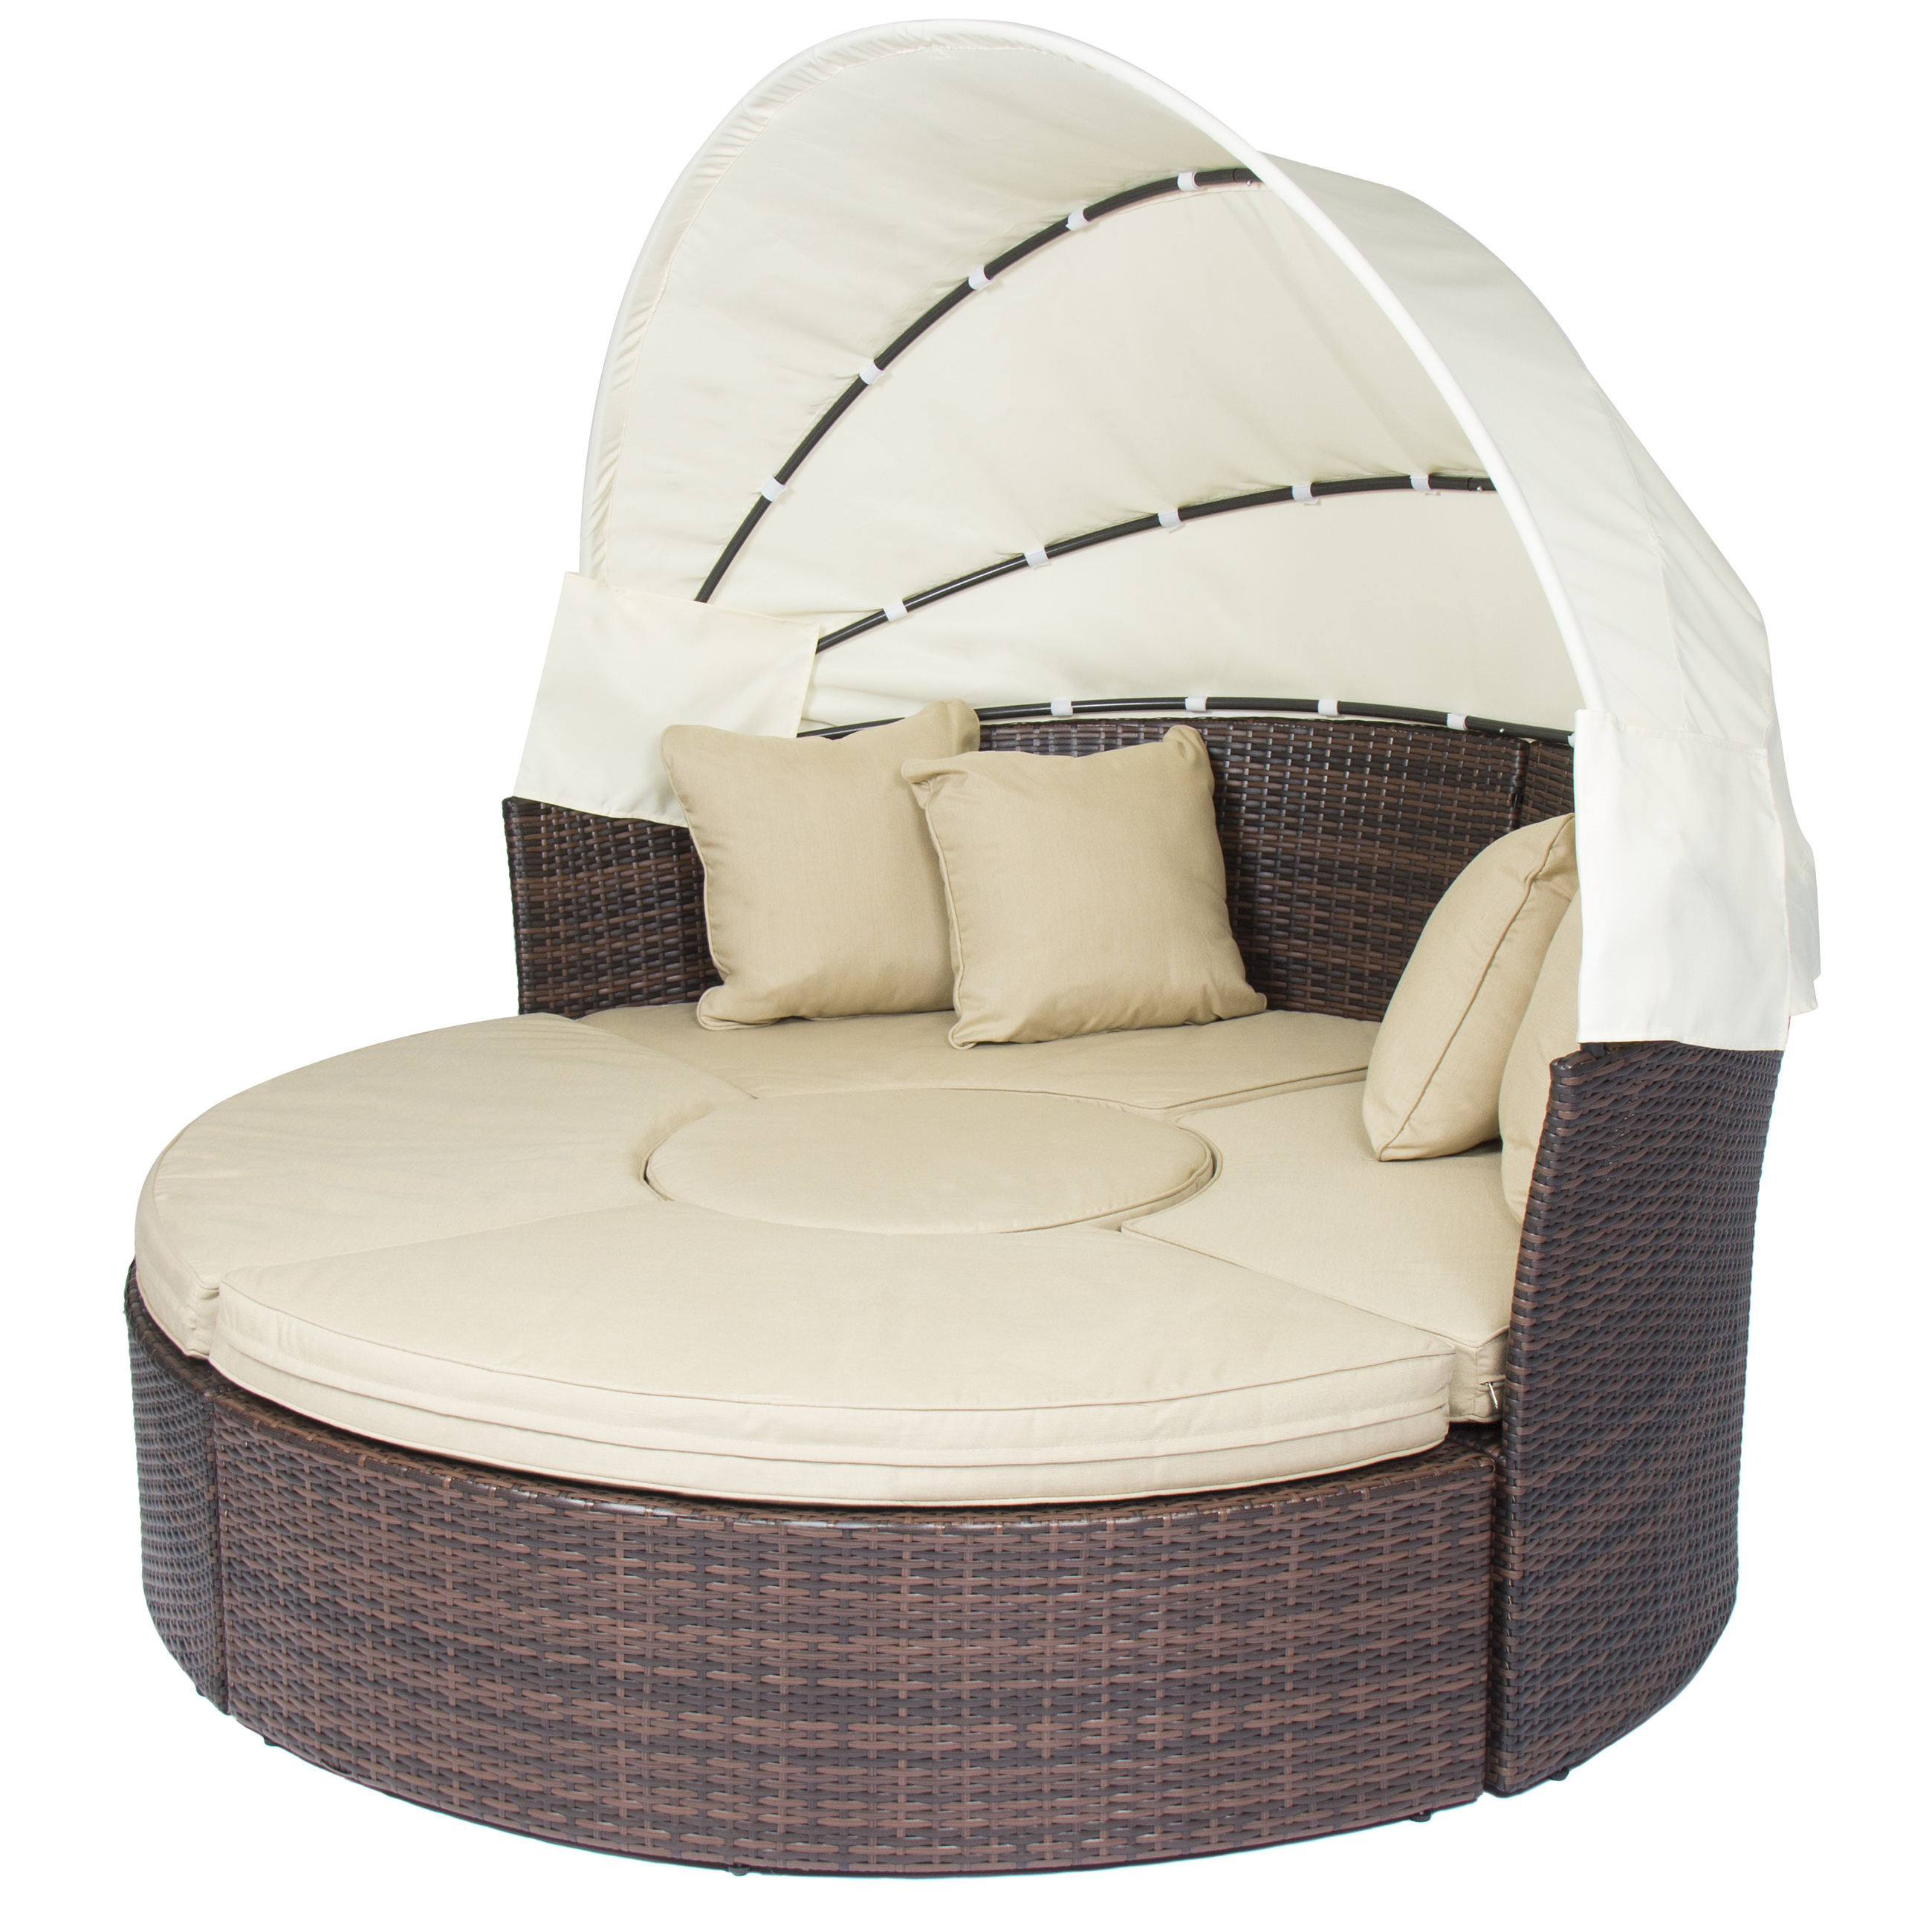 Fashionable Round Sofa Chairs For Best Choice Products Outdoor Patio Sofa Furniture Round Retractable (View 10 of 20)